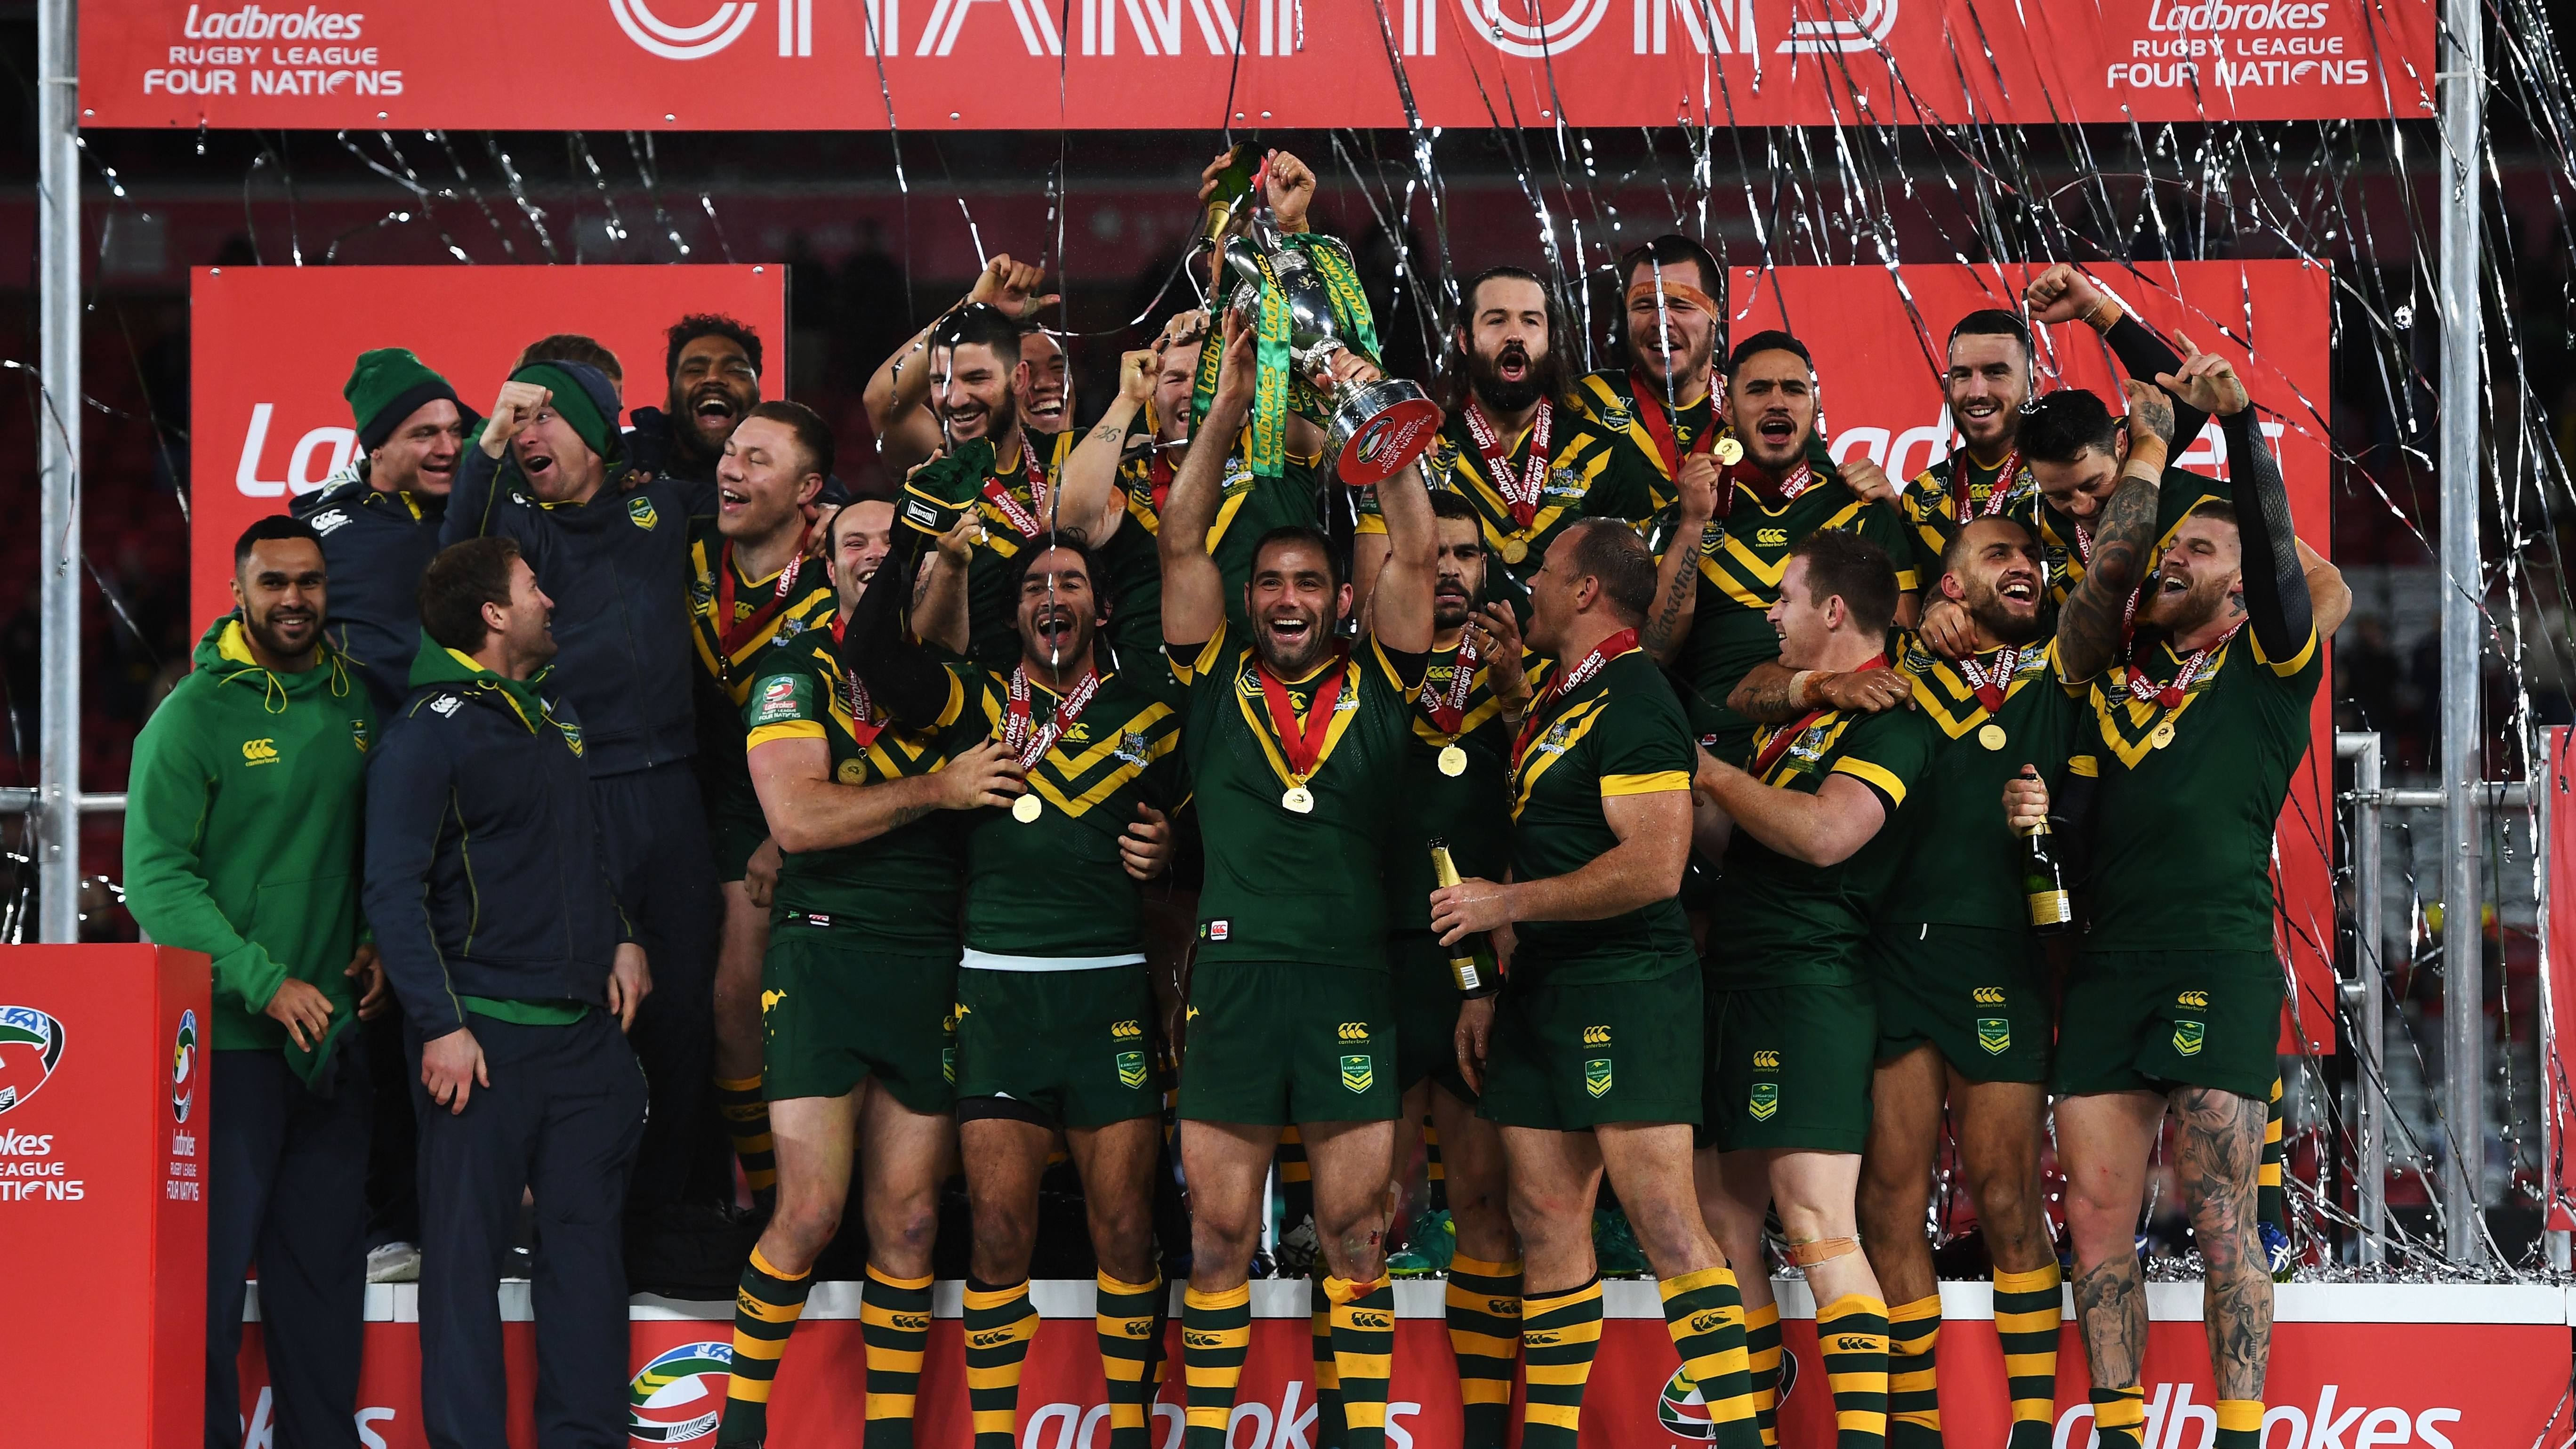 ... Blake Ferguson has been awarded the prestigious honour of best Kangaroos player on tour, as voted by the team after their Four Nations final victory.